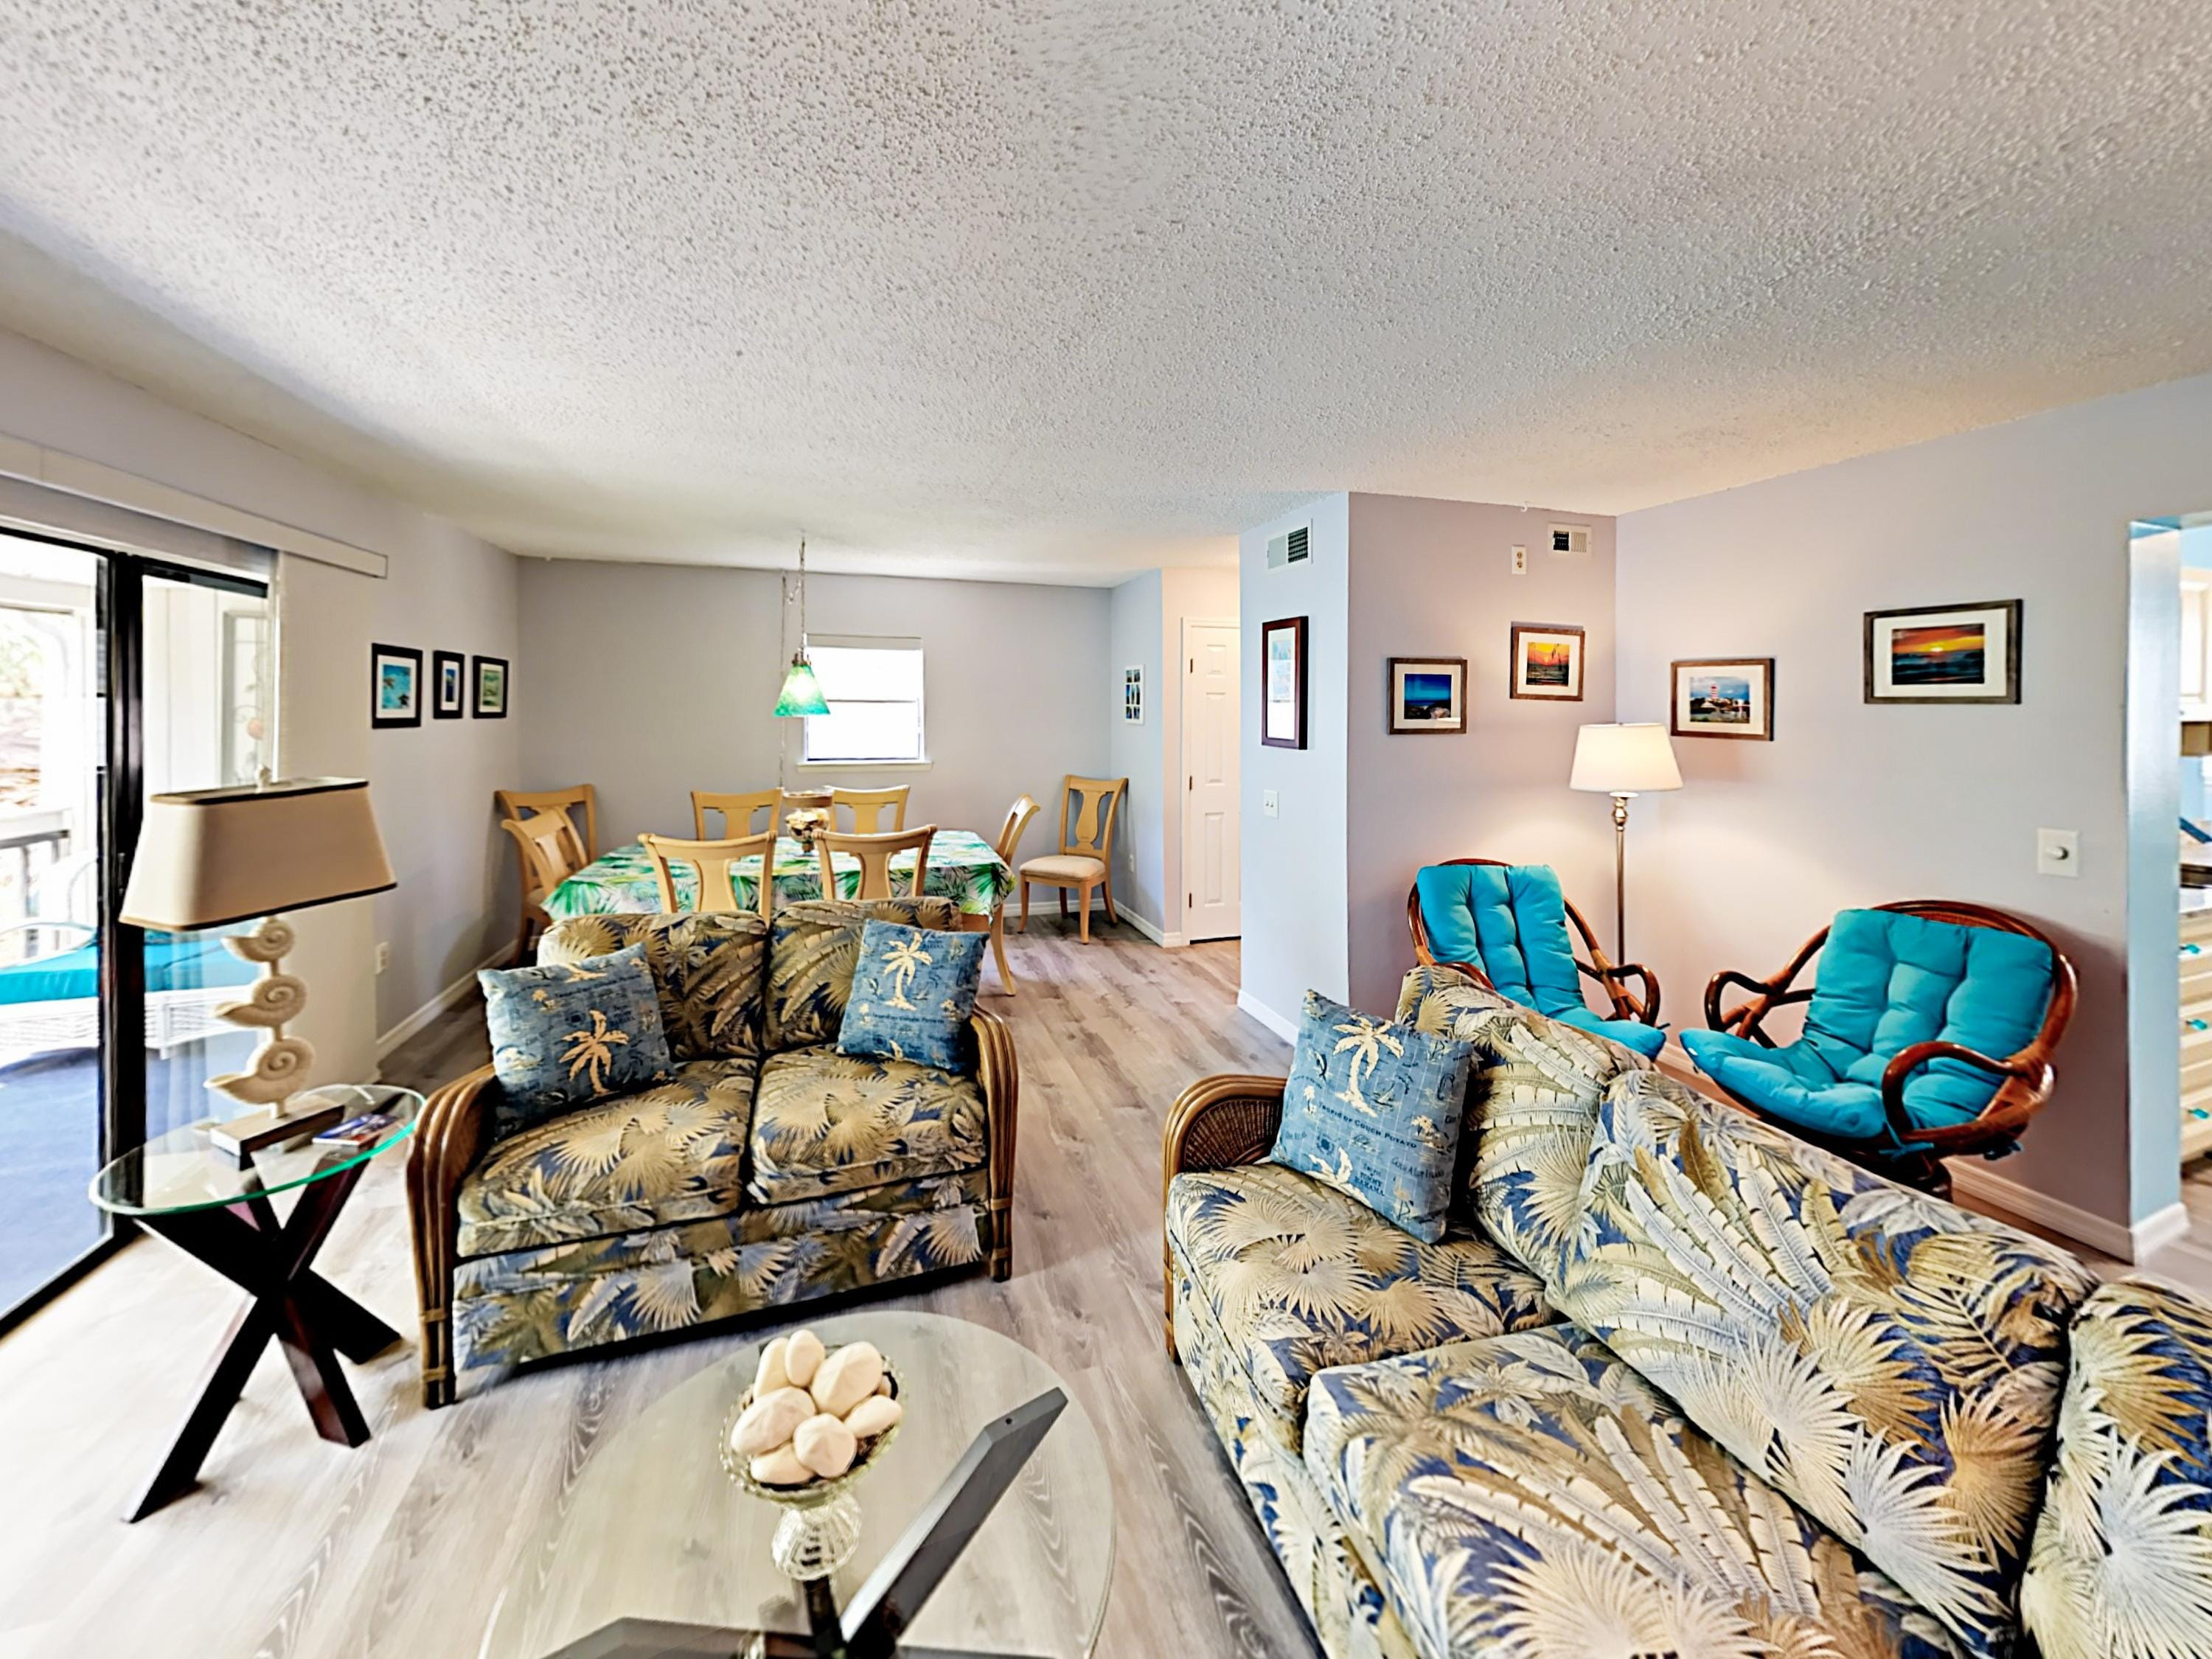 Elegant Tommy Bahama decor in the living room. This welcoming condo is professionally managed by  TurnKey Vacation Rentals.